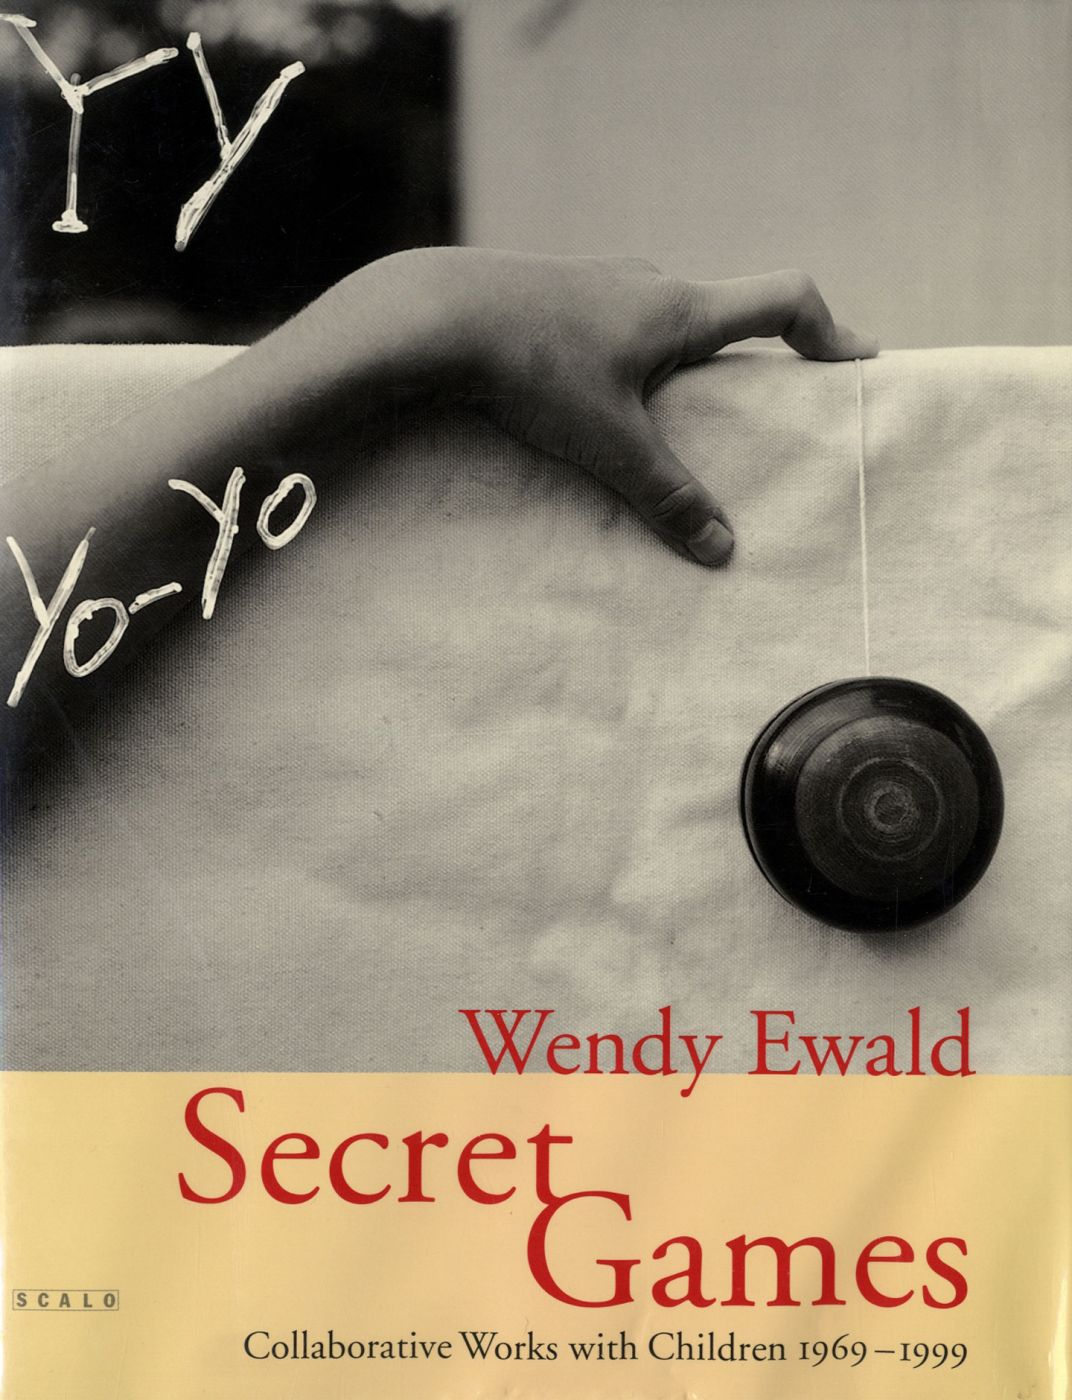 Wendy Ewald: Secret Games, Collaborative Works with Children 1969-1999 [SIGNED]